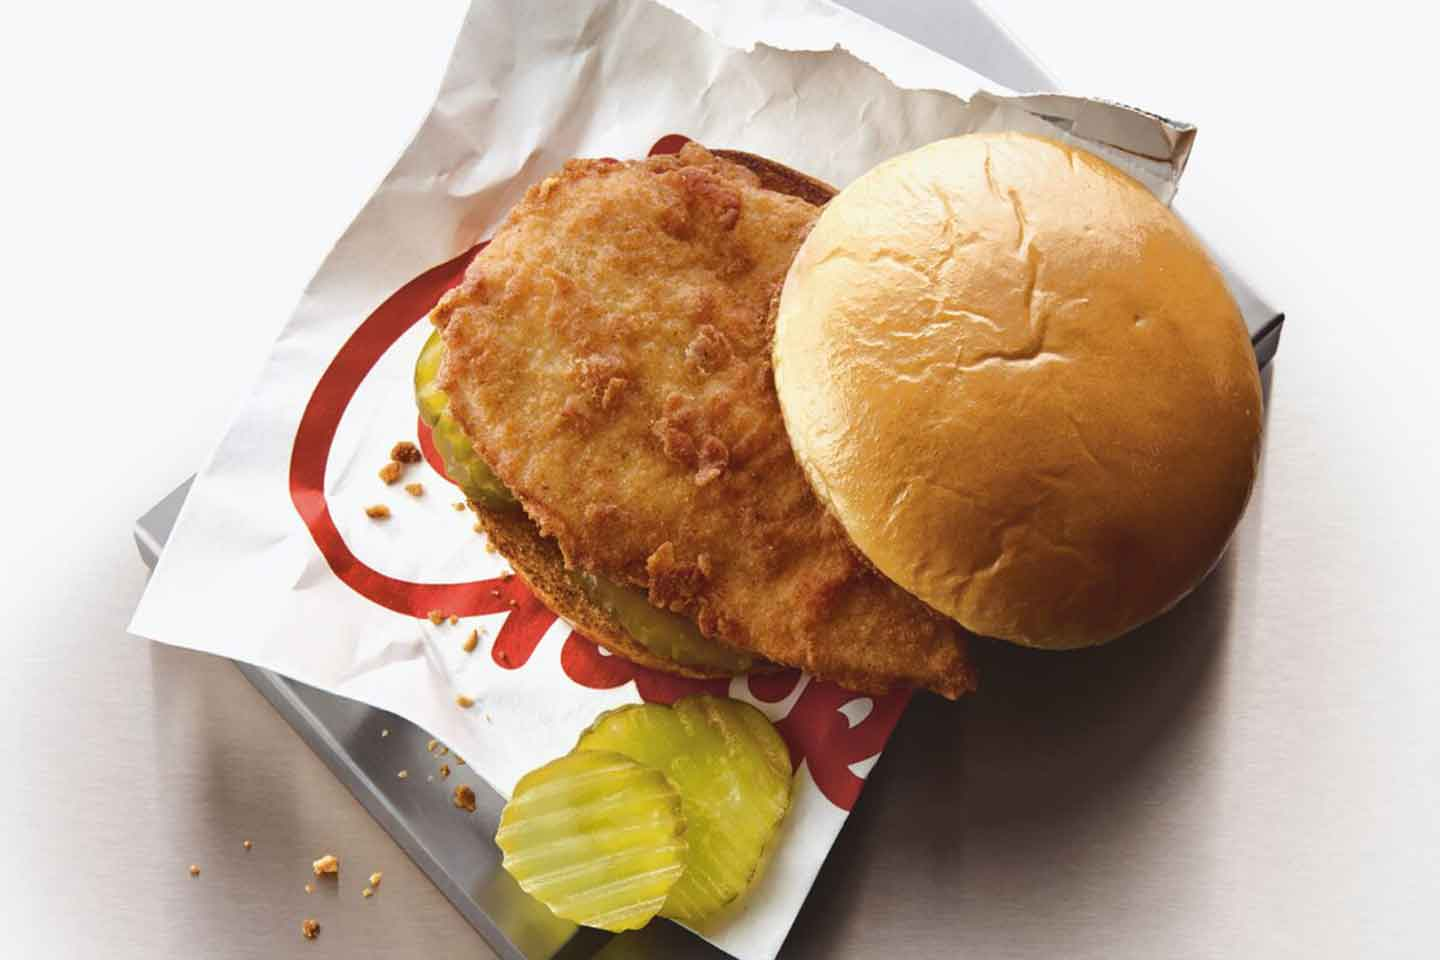 Chick-fil-A Sandwich with Pickles